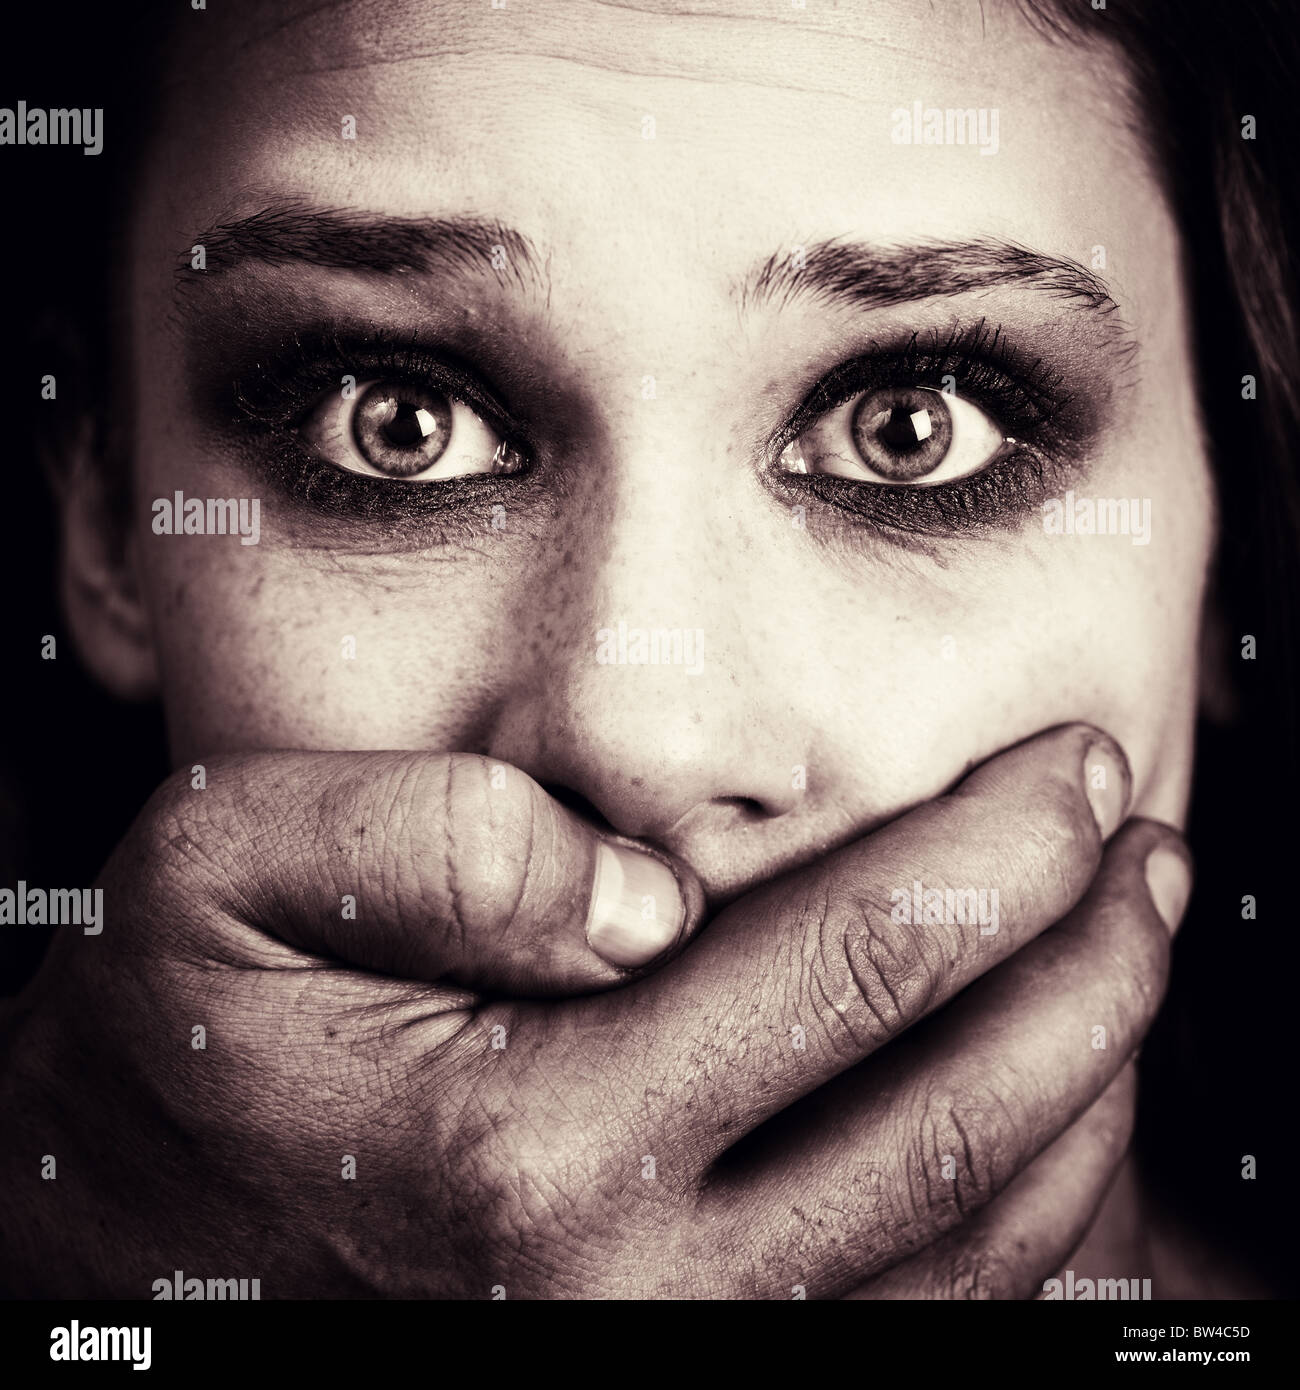 Scared woman victim of domestic torture and violence - Stock Image